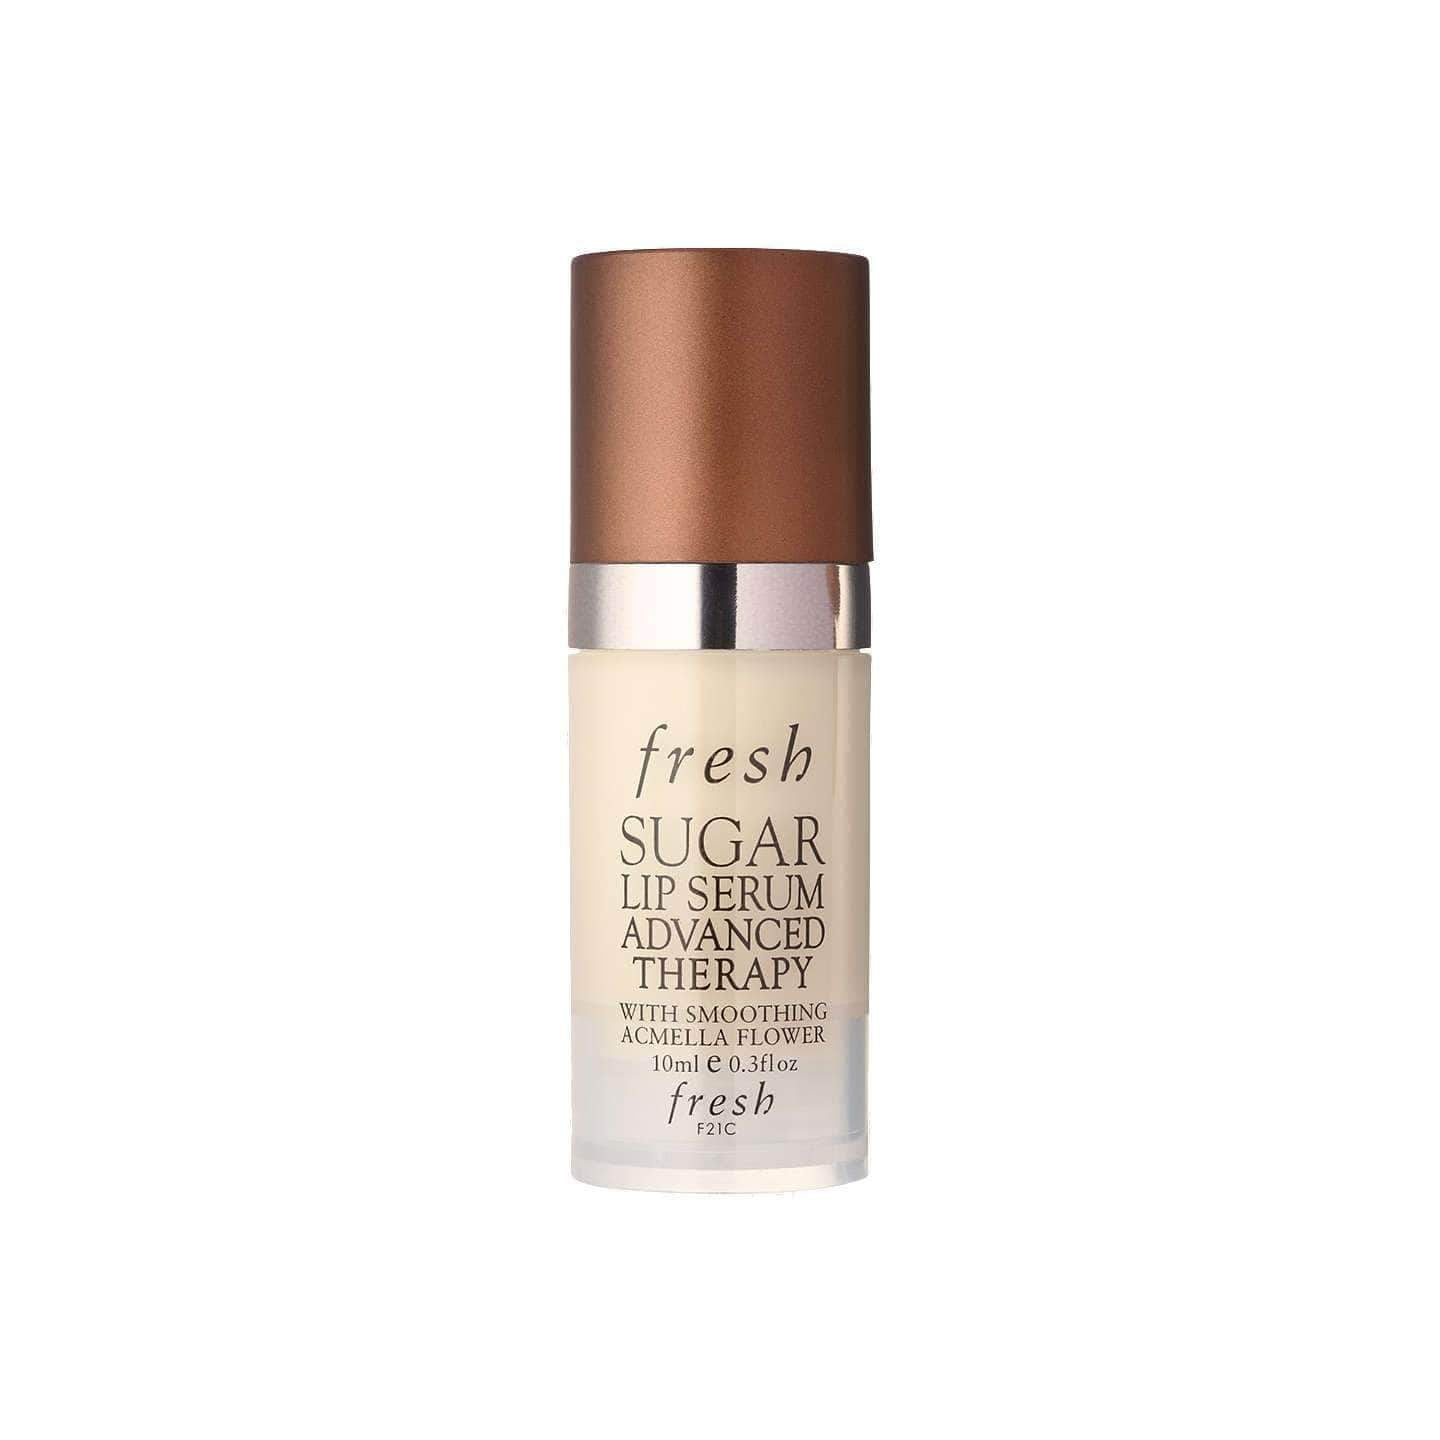 Fresh Sugar Lip Serum Advanced Therapy, 10ml, Serums, London Loves Beauty